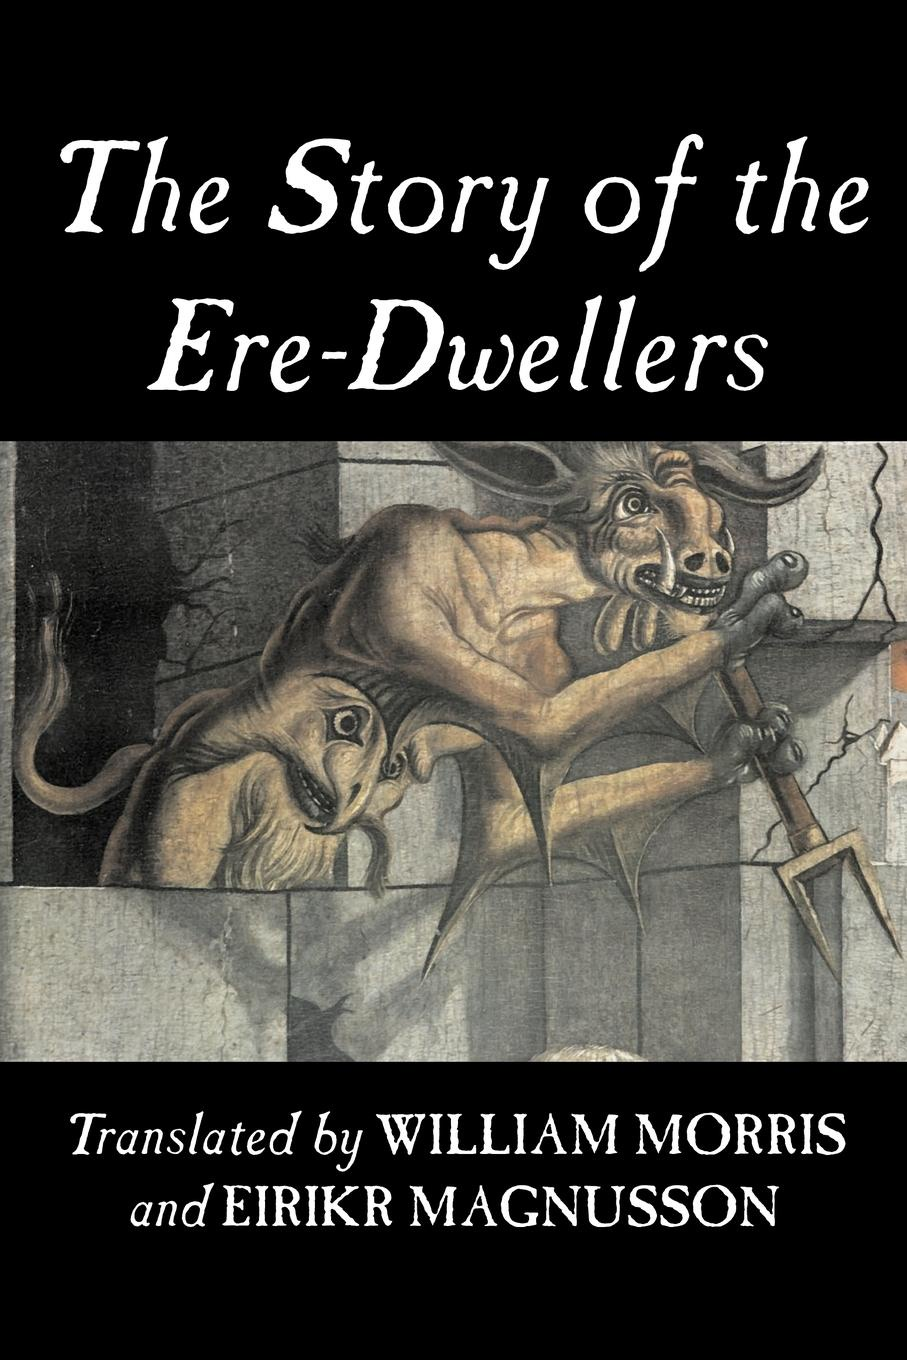 William Morris, Eiríkr Magnússon, Eirikr Magnusson The Story of the Ere-Dwellers by Wiliam Morris, Fiction, Classics, Fantasy, Fairy Tales, Folk Tales, Legends & Mythology свитшот женский с полной запечаткой printio атака титанов